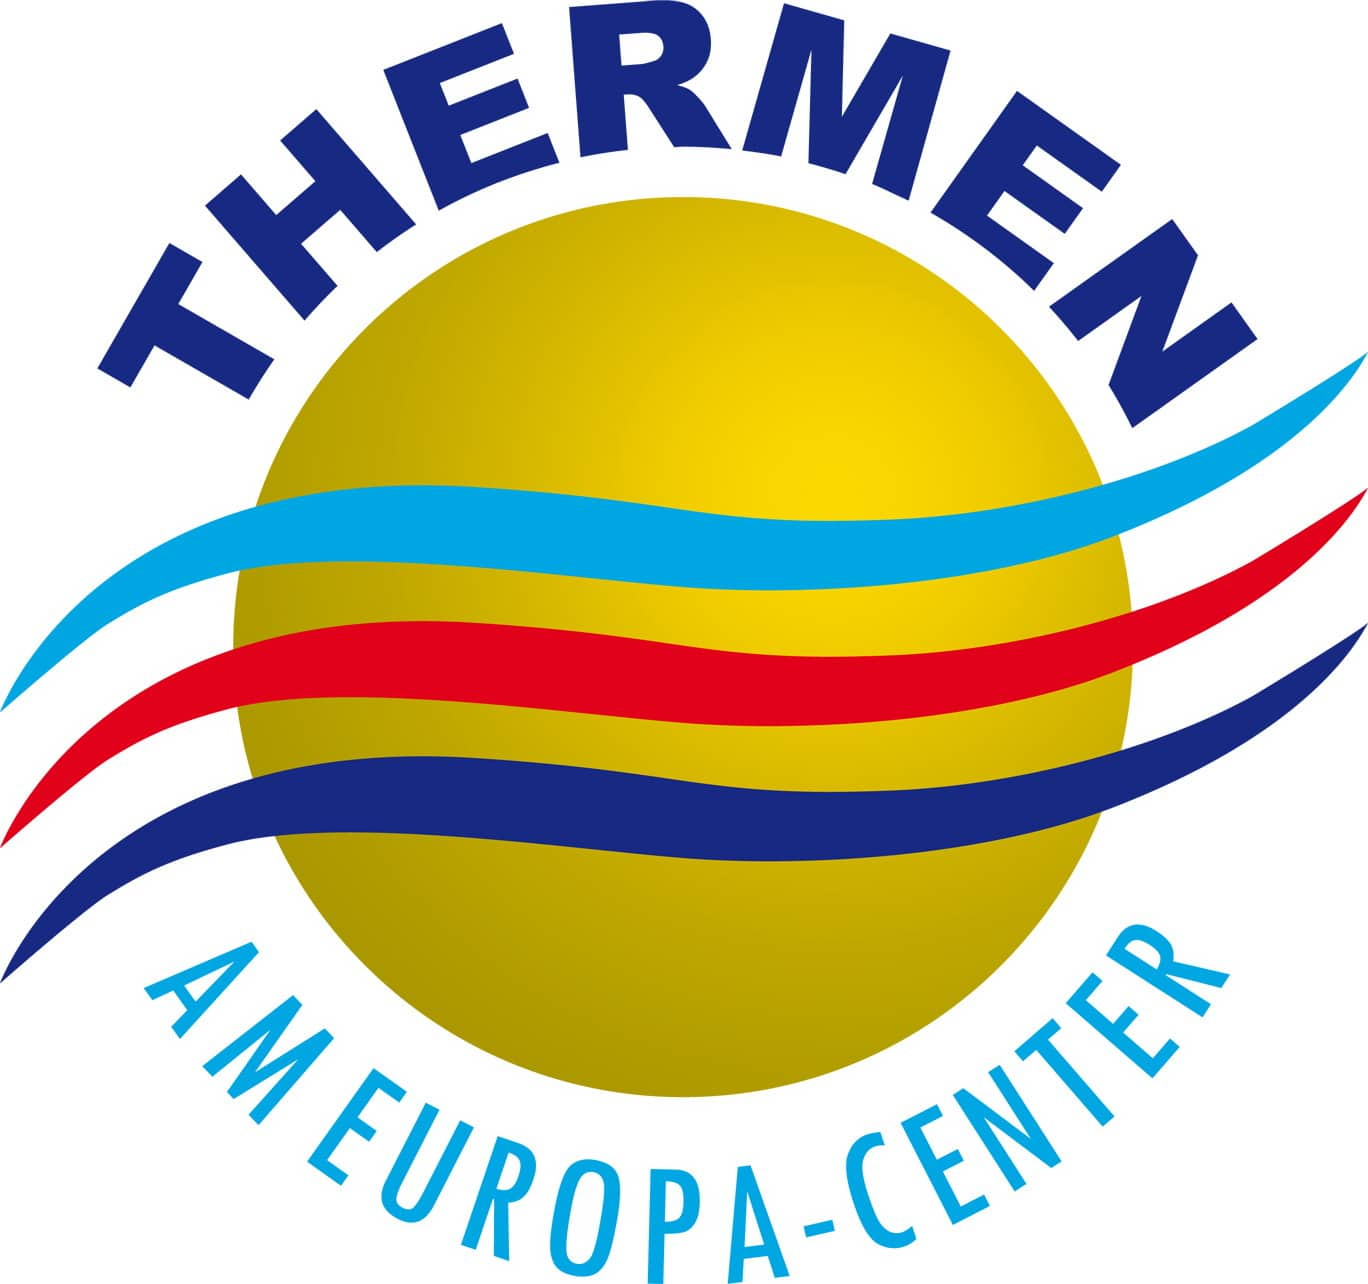 Thermen Berlin at the Europa-Center